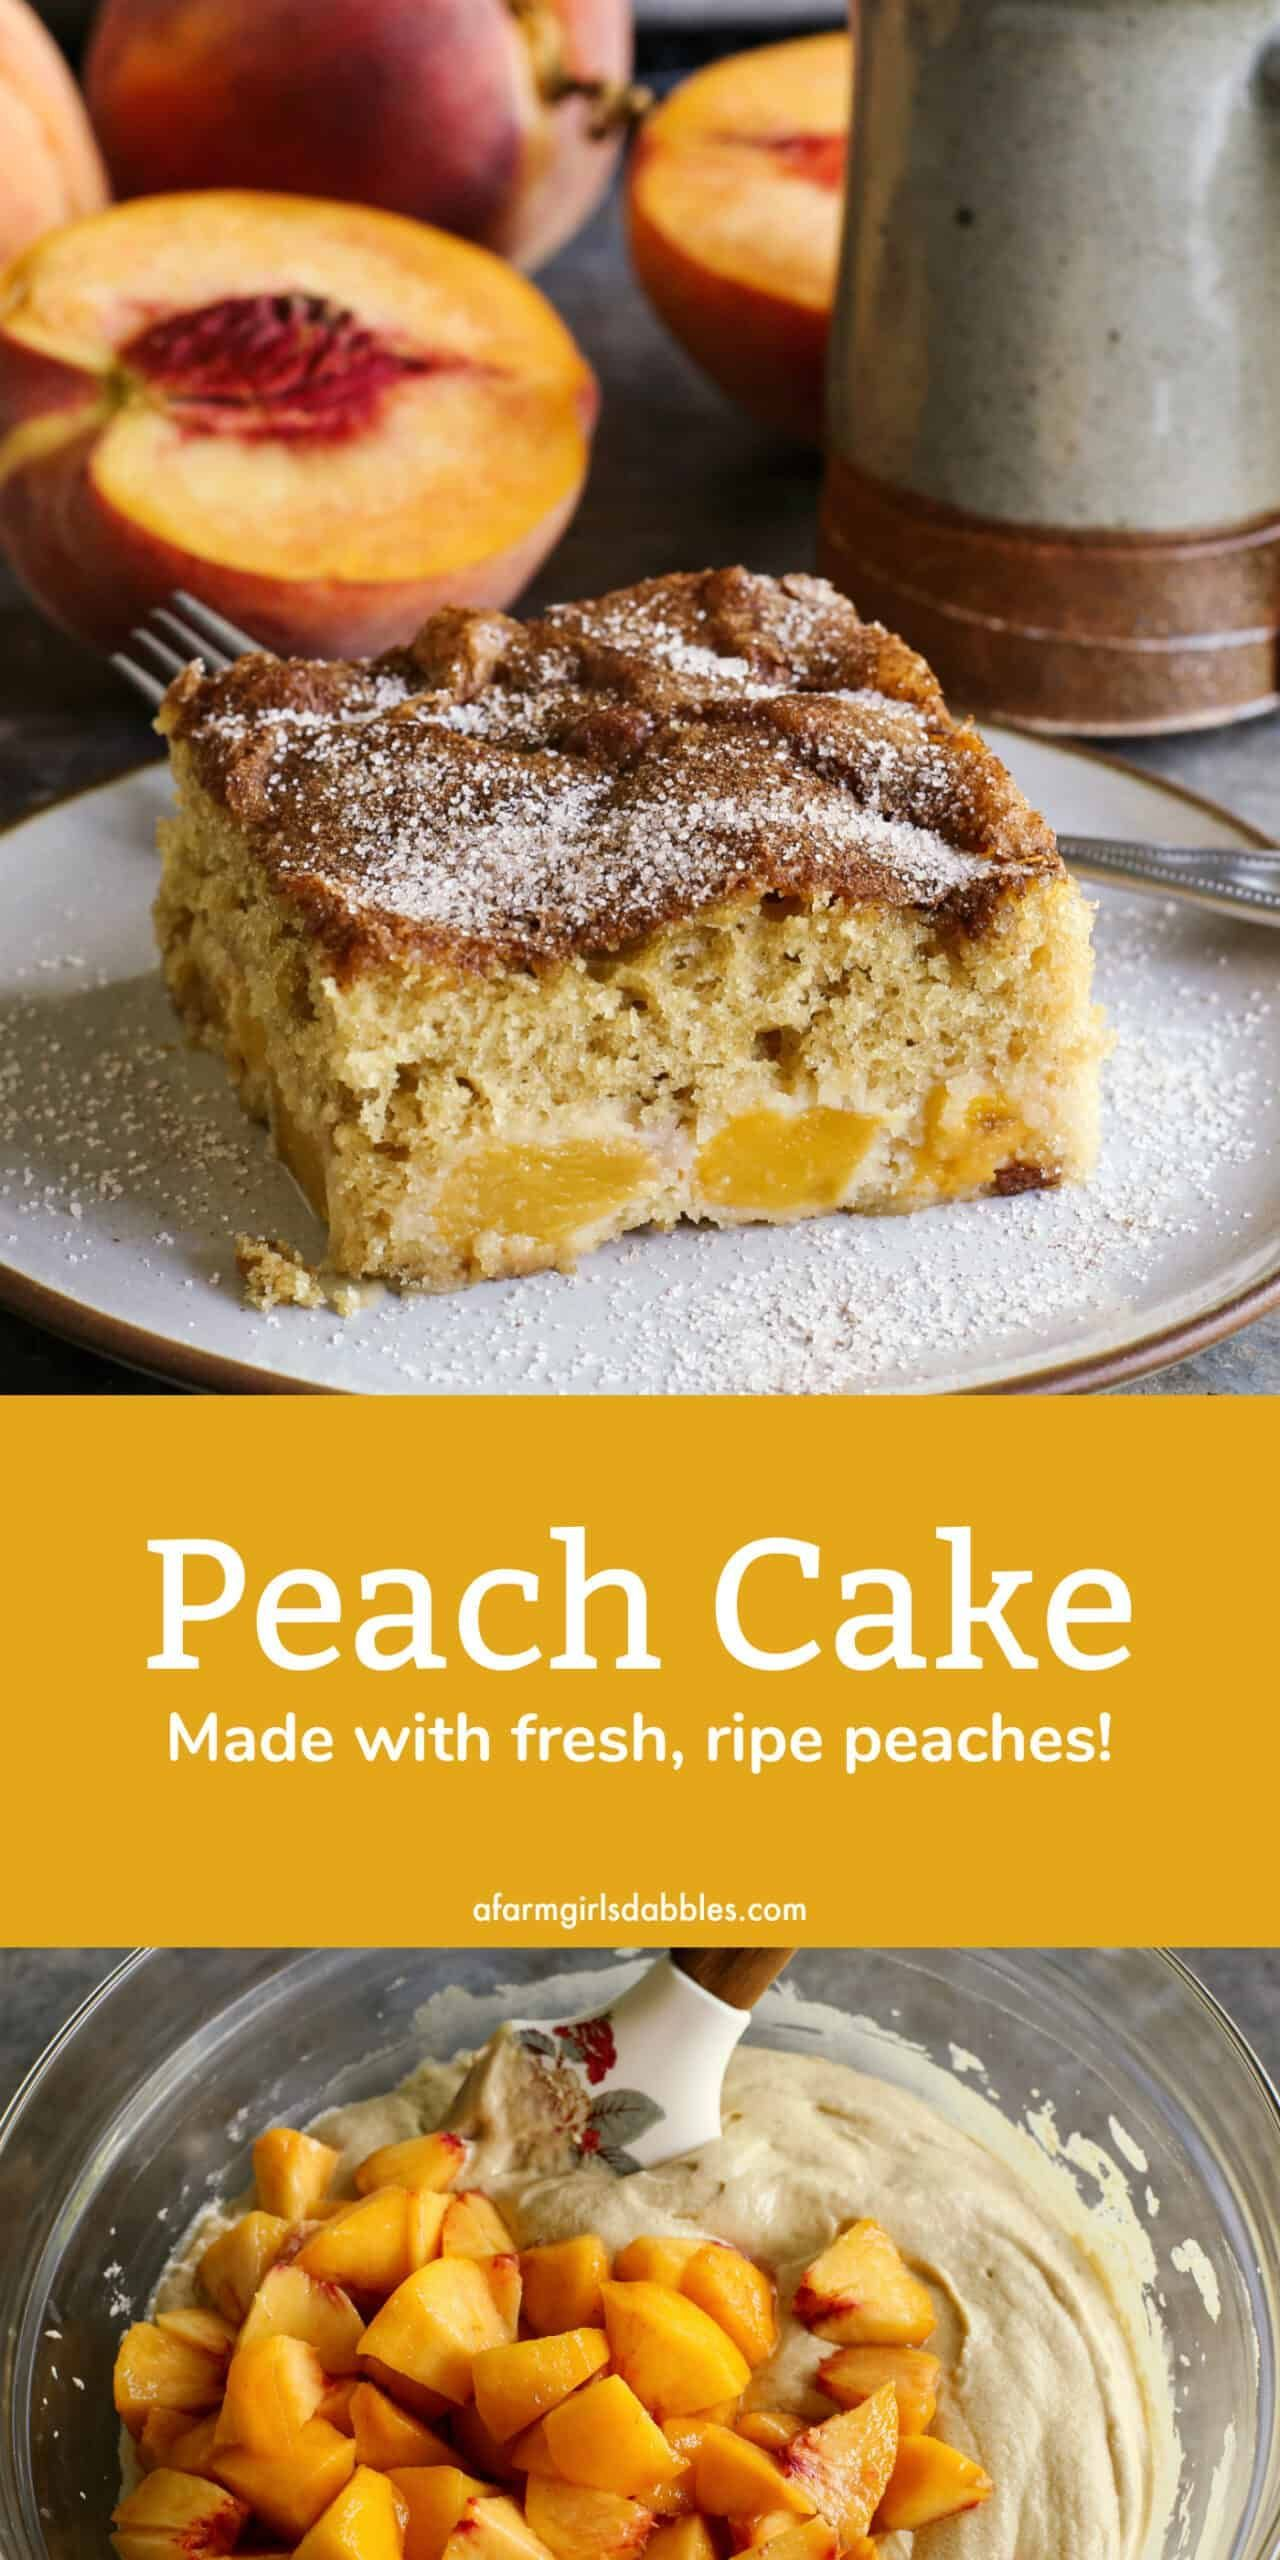 Jessica Peaches 2020 Christmas This Easy Homemade Cake Is Made With Delicious Fresh Peaches